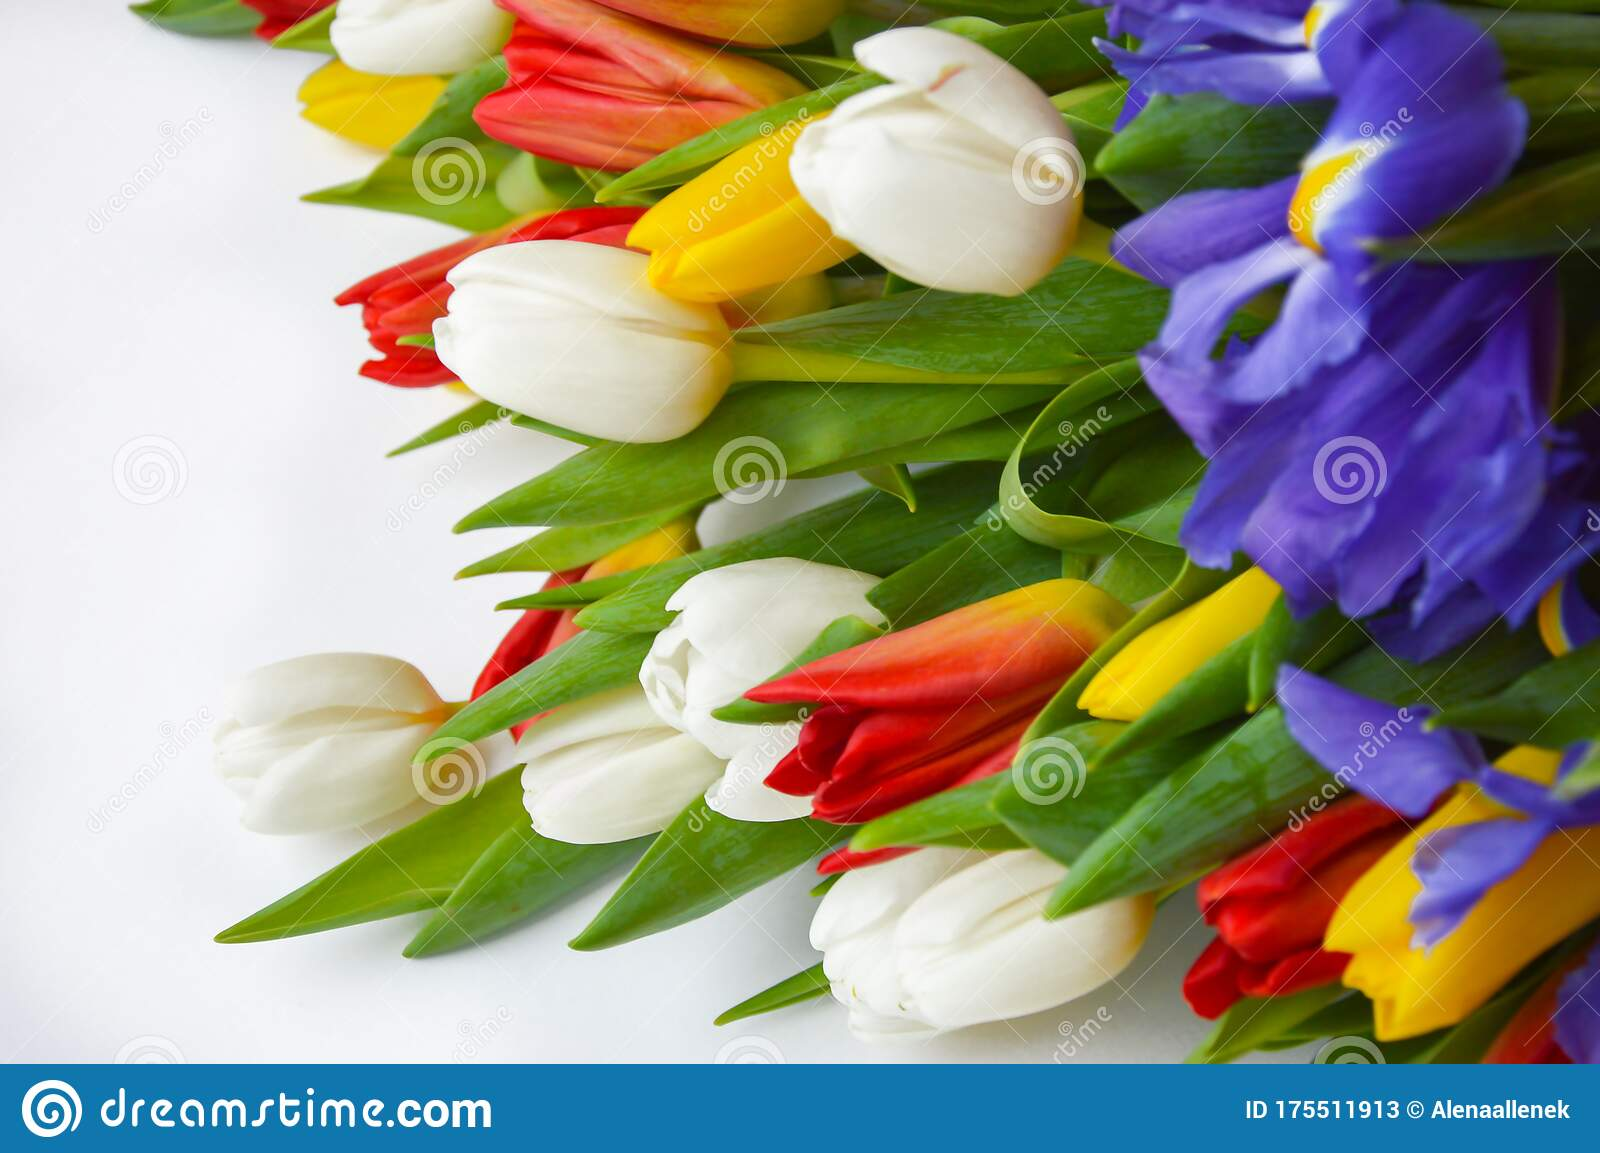 Bright Bouquet Of Tulips Flowers Are White Red Yellow And Blue Stock Image Image Of Garden Background 175511913